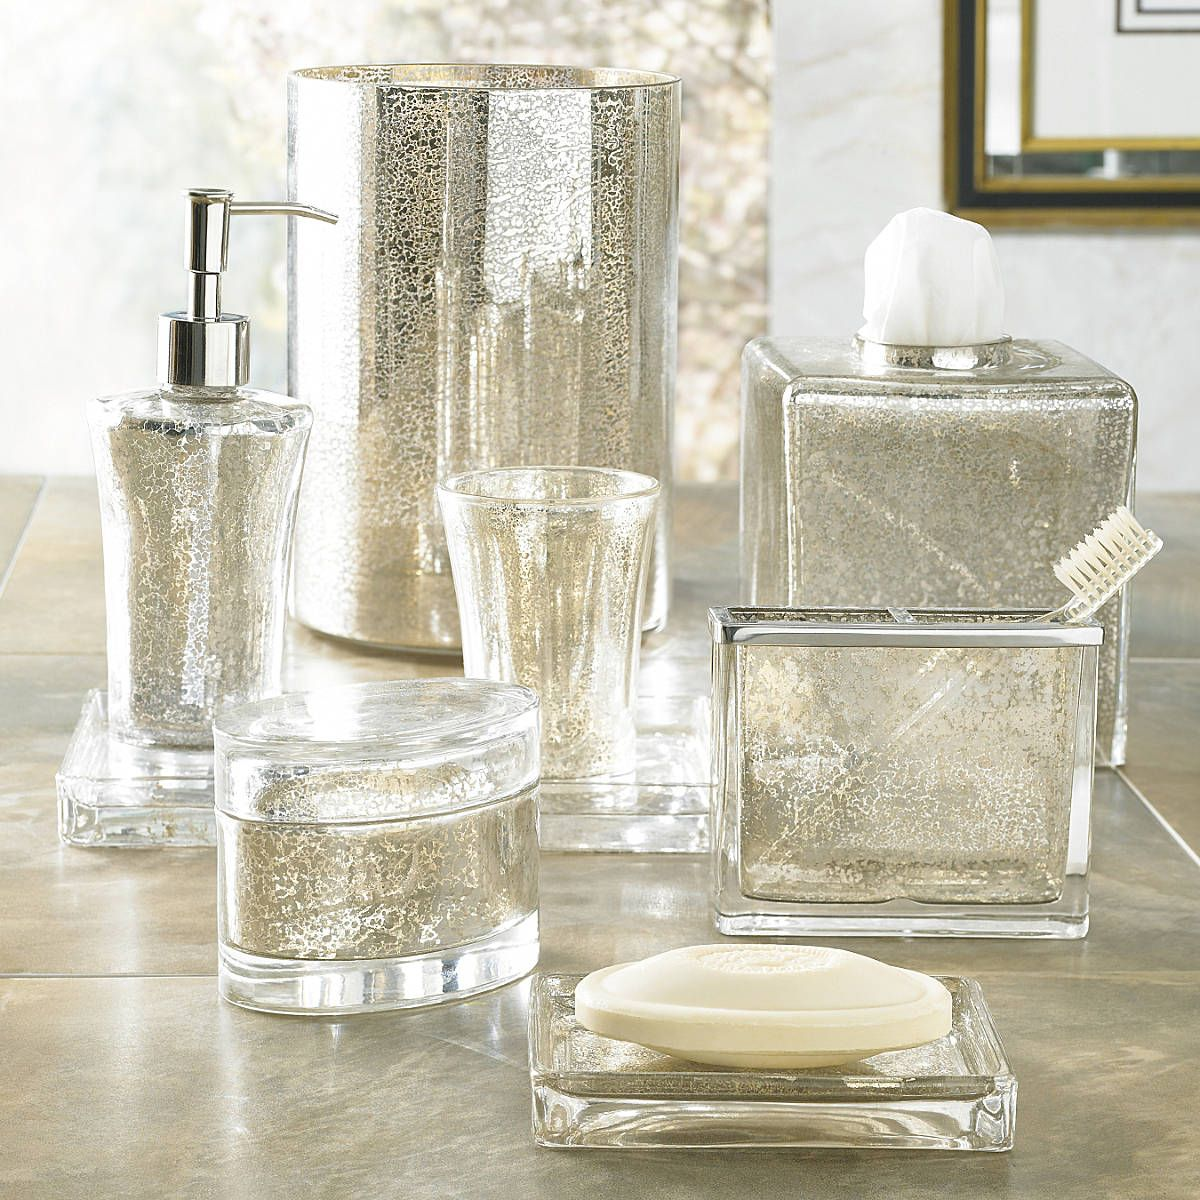 Shop bathroom accessories - Luxury Bath Accessory Sets Vizcaya Accessories By Kassatex Kassatex